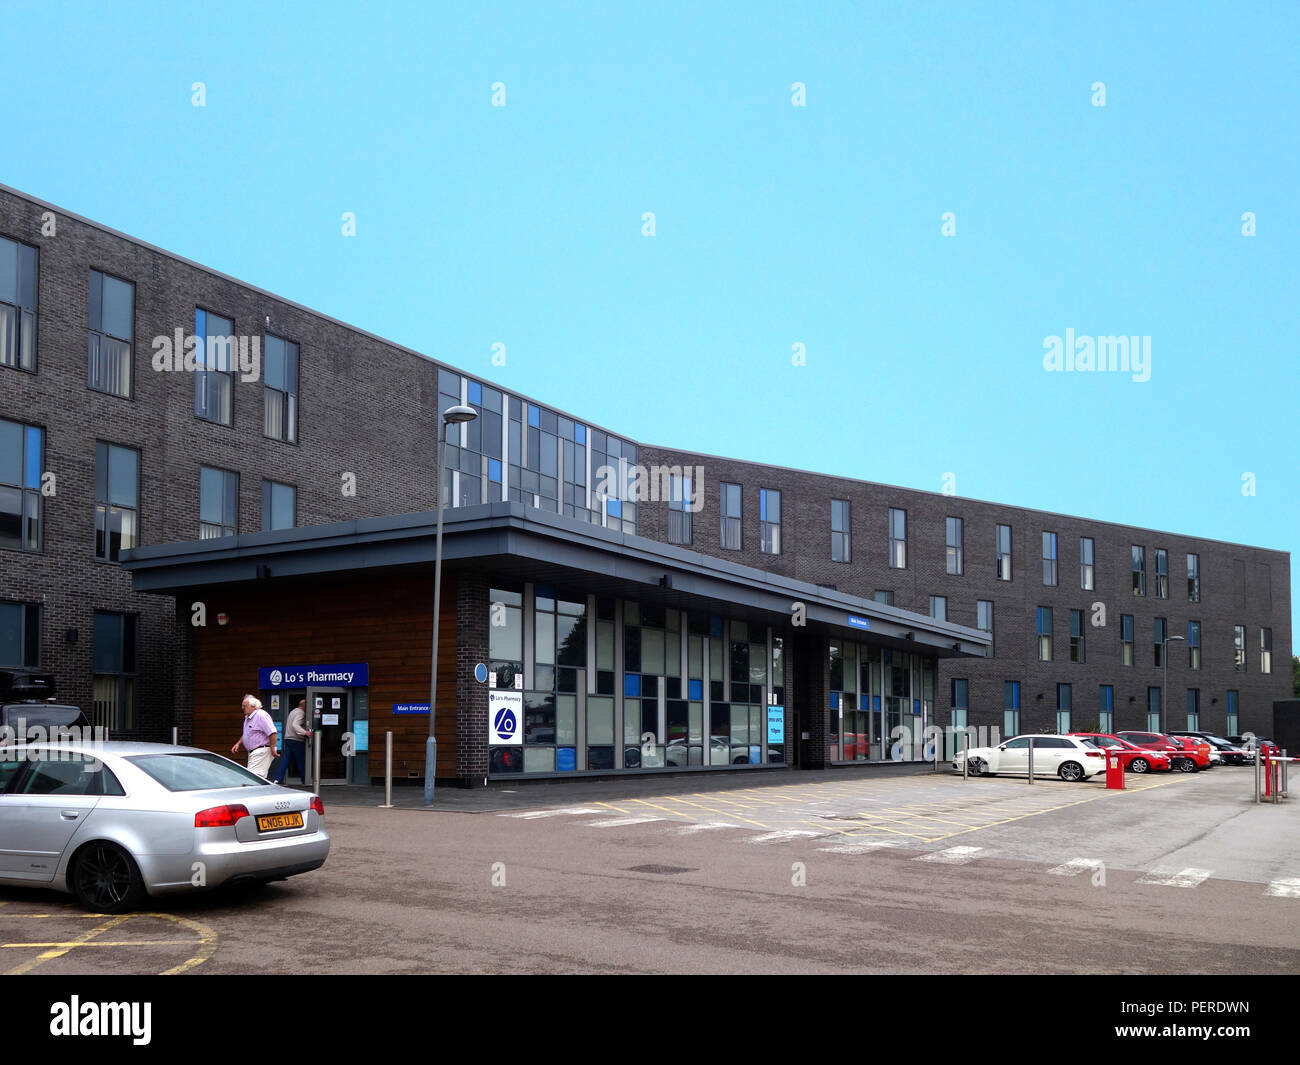 Exterior of the Rotherham Community Health Centre and Doctors Surgery, Rotherham South Yorkshire, England - Stock Image